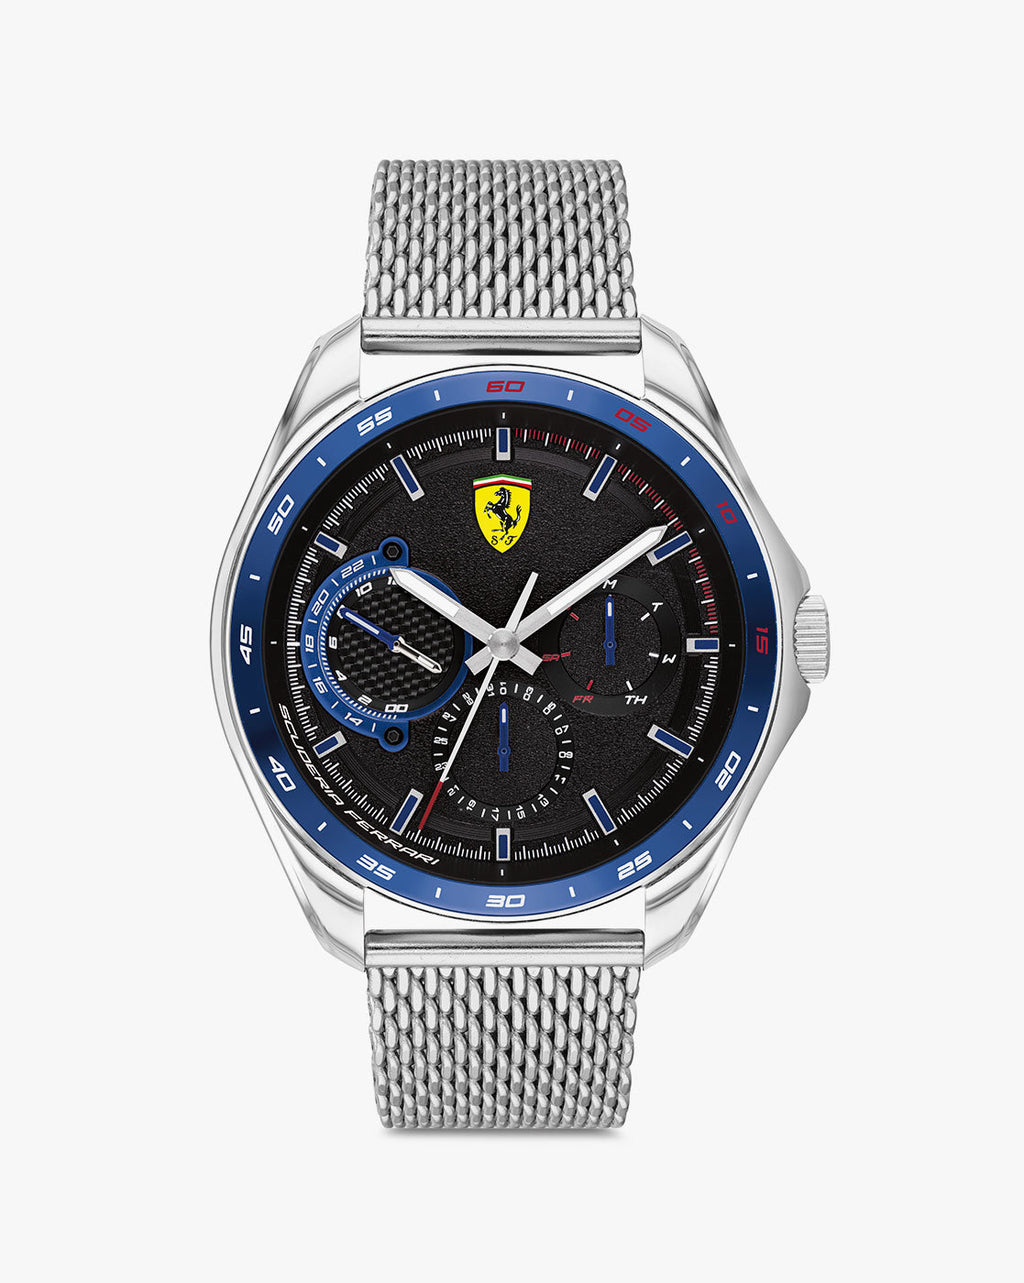 830685 Chronograph Watch with Contrast Dial